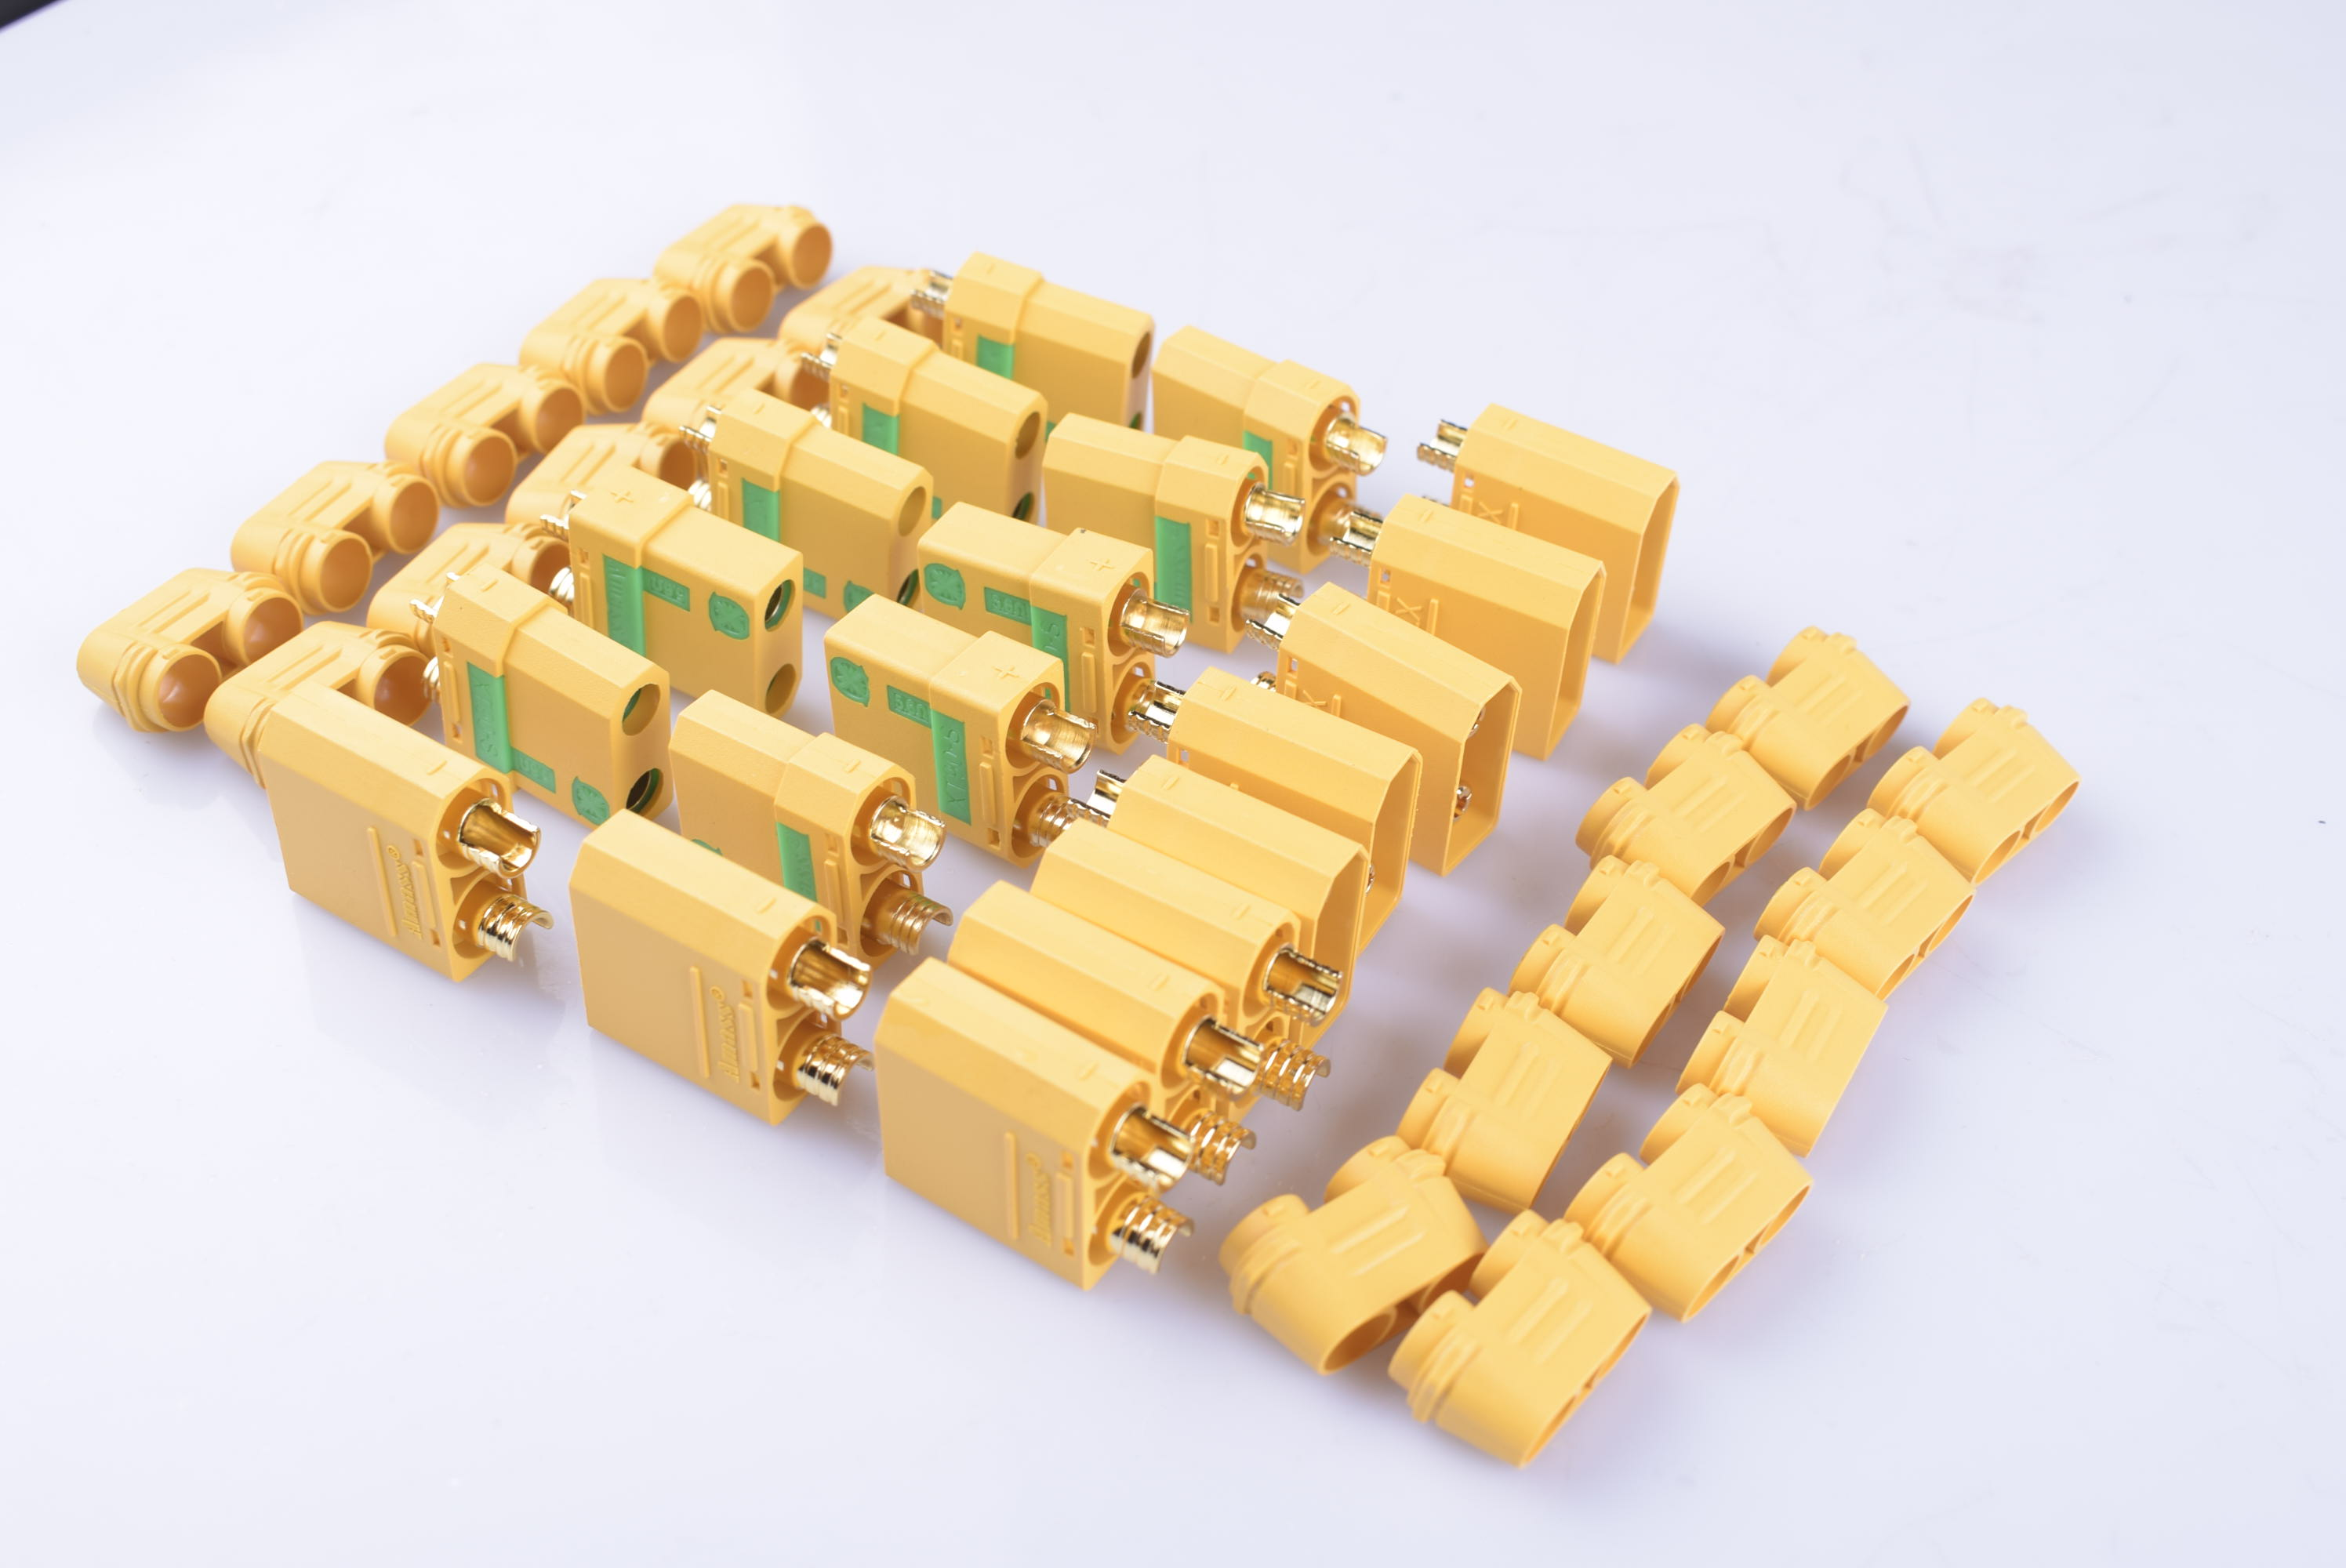 10 Pairs 20pcs Amass XT90-S Anti-Spark XT90 Deans Male Female Bullet Connectors Plugs With Cover Cap For RC Drones Trains Boats